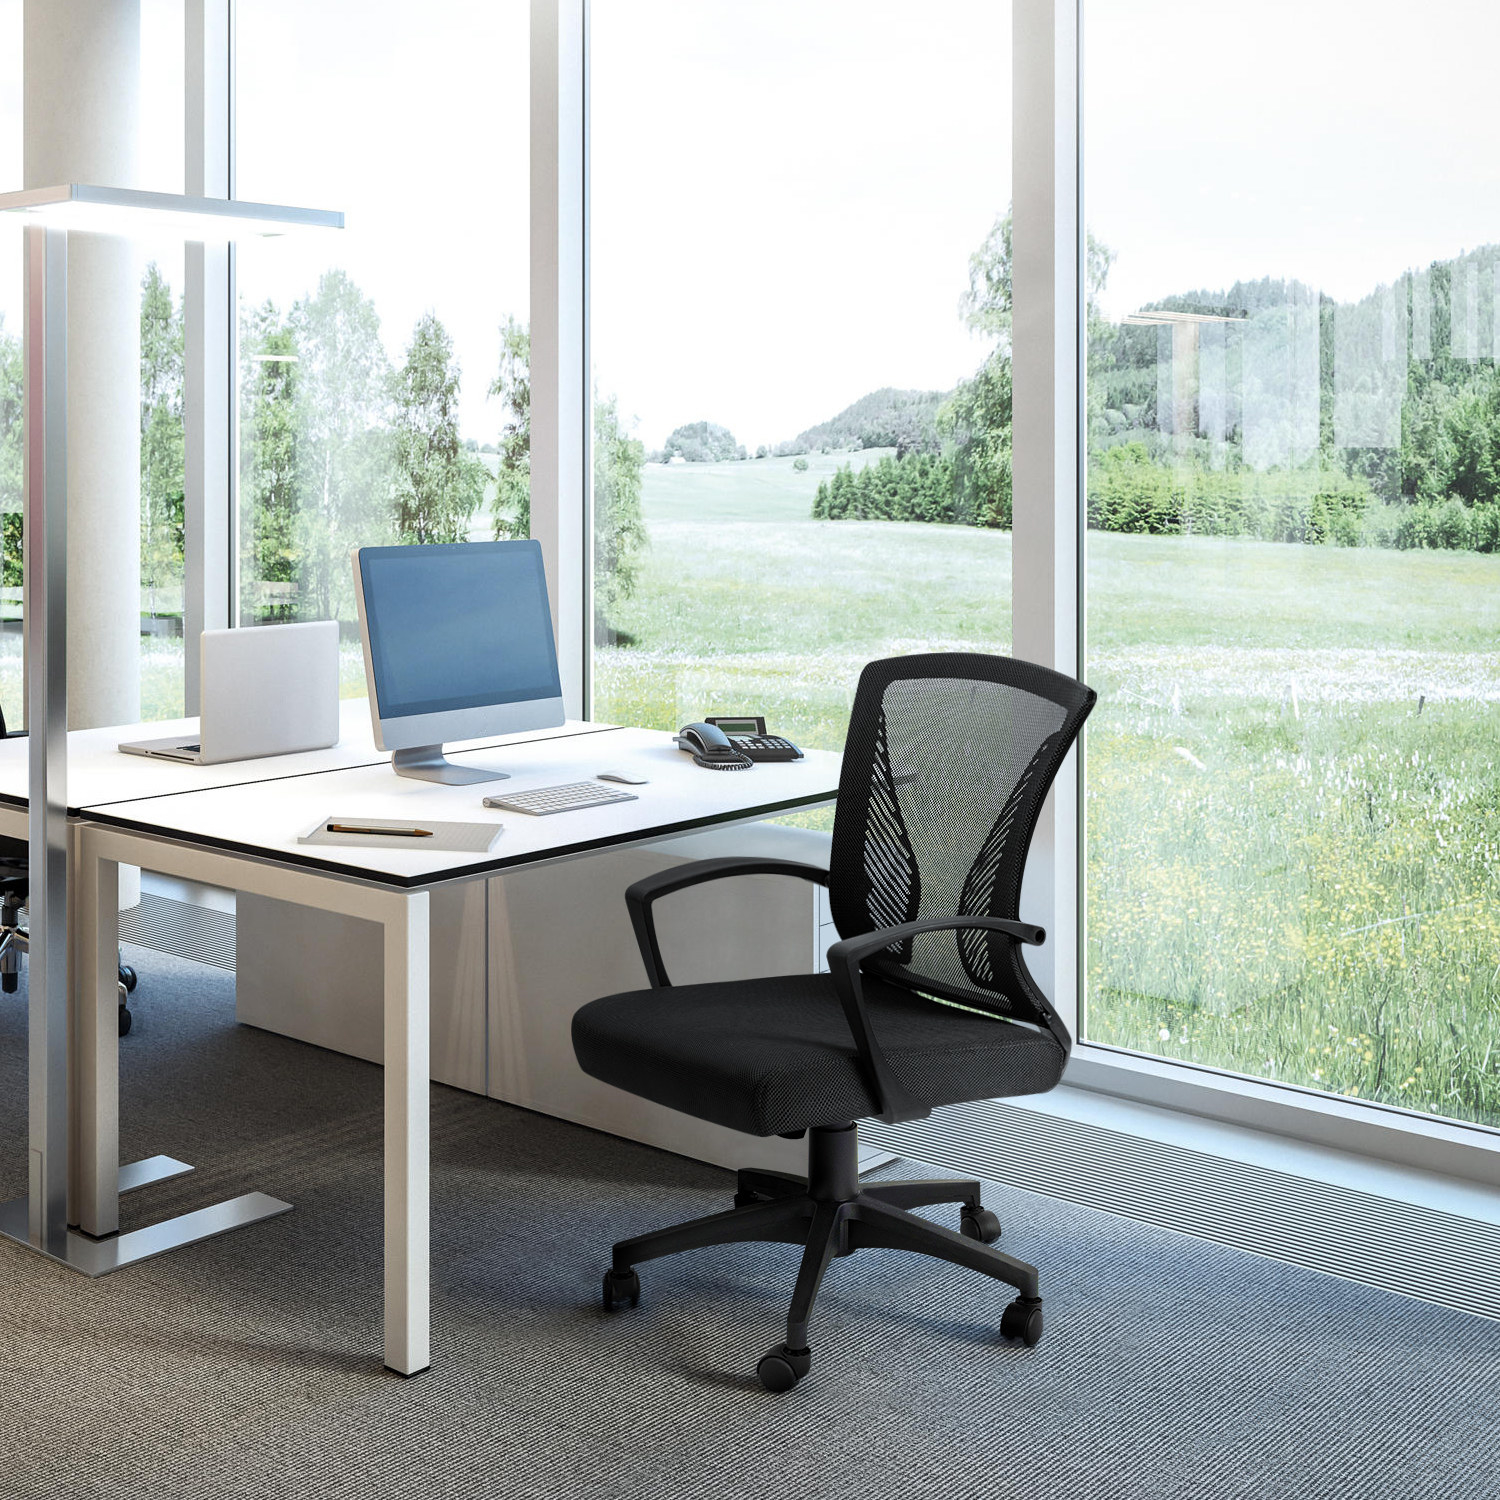 black office chair at a desk